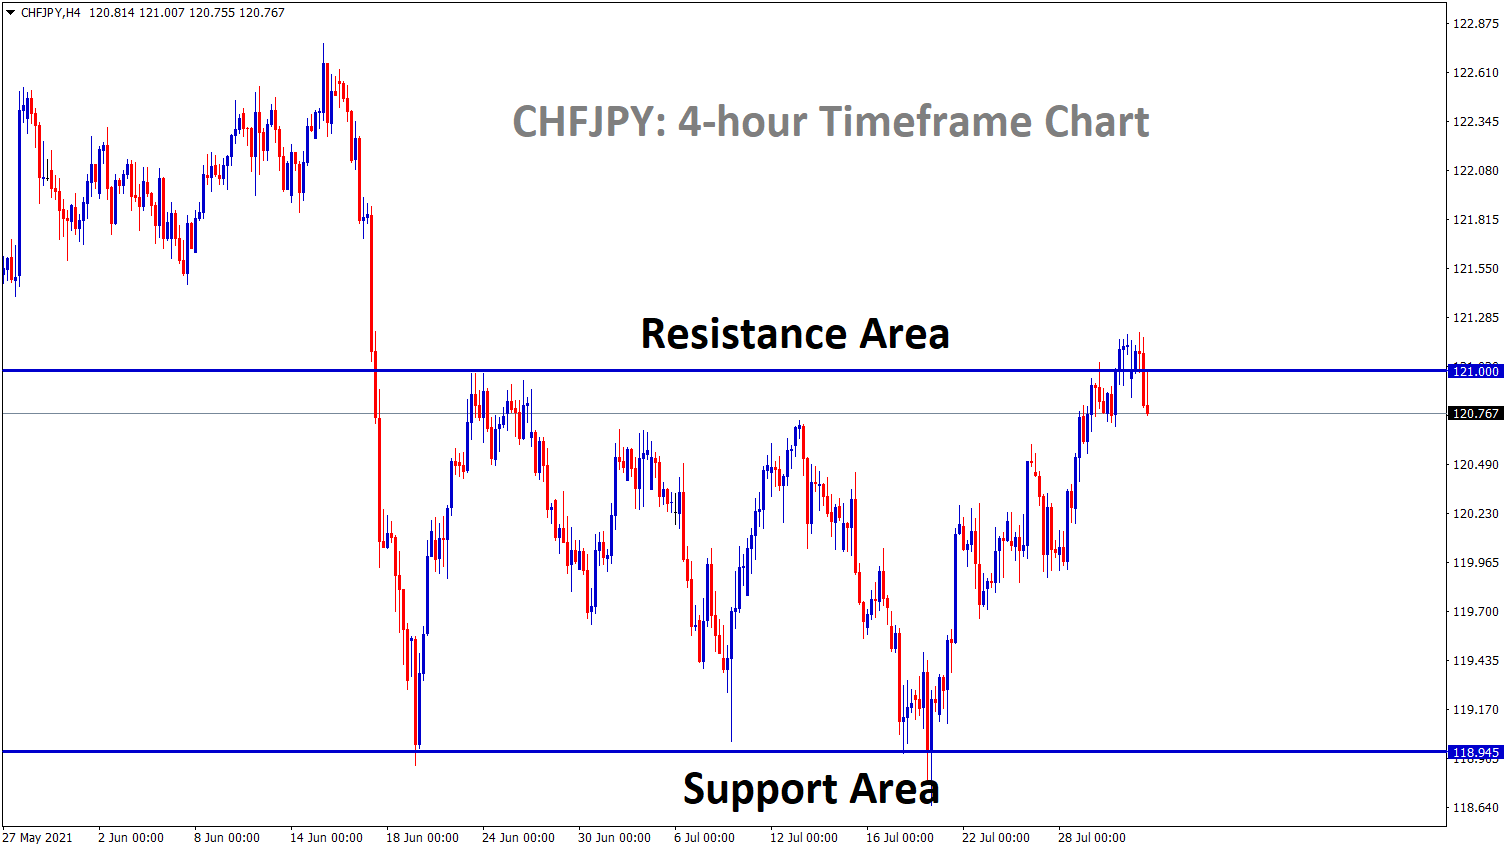 CHFJPY is standing now at the resistance area it is ranging between SR levels for a long time